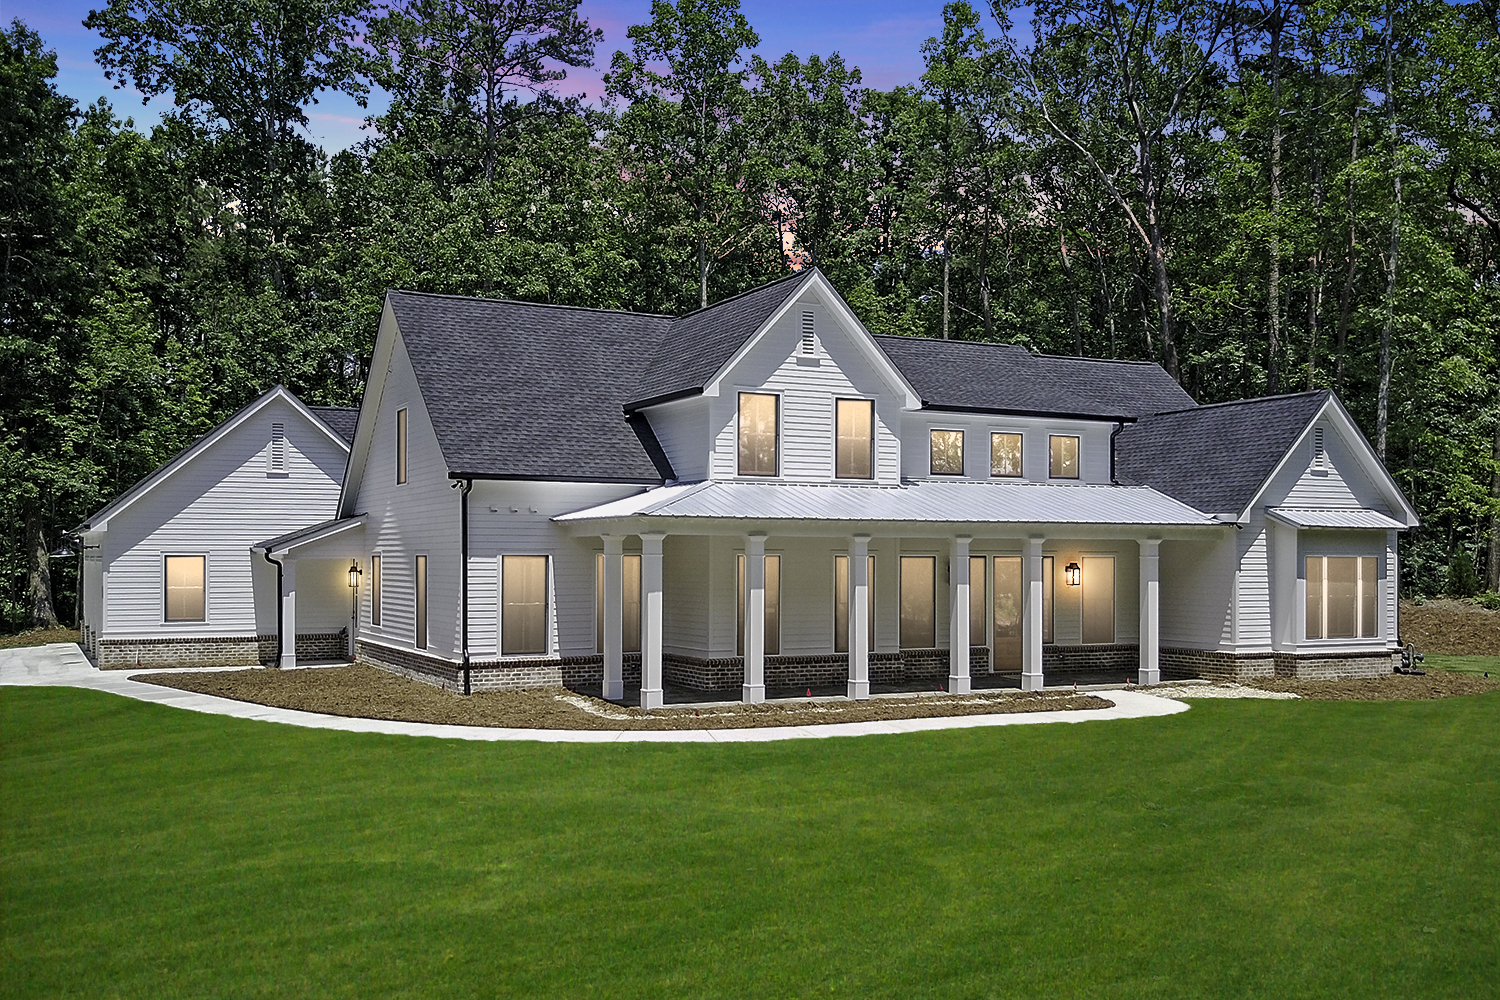 New Modern Farmhouse with Award Winning Plan